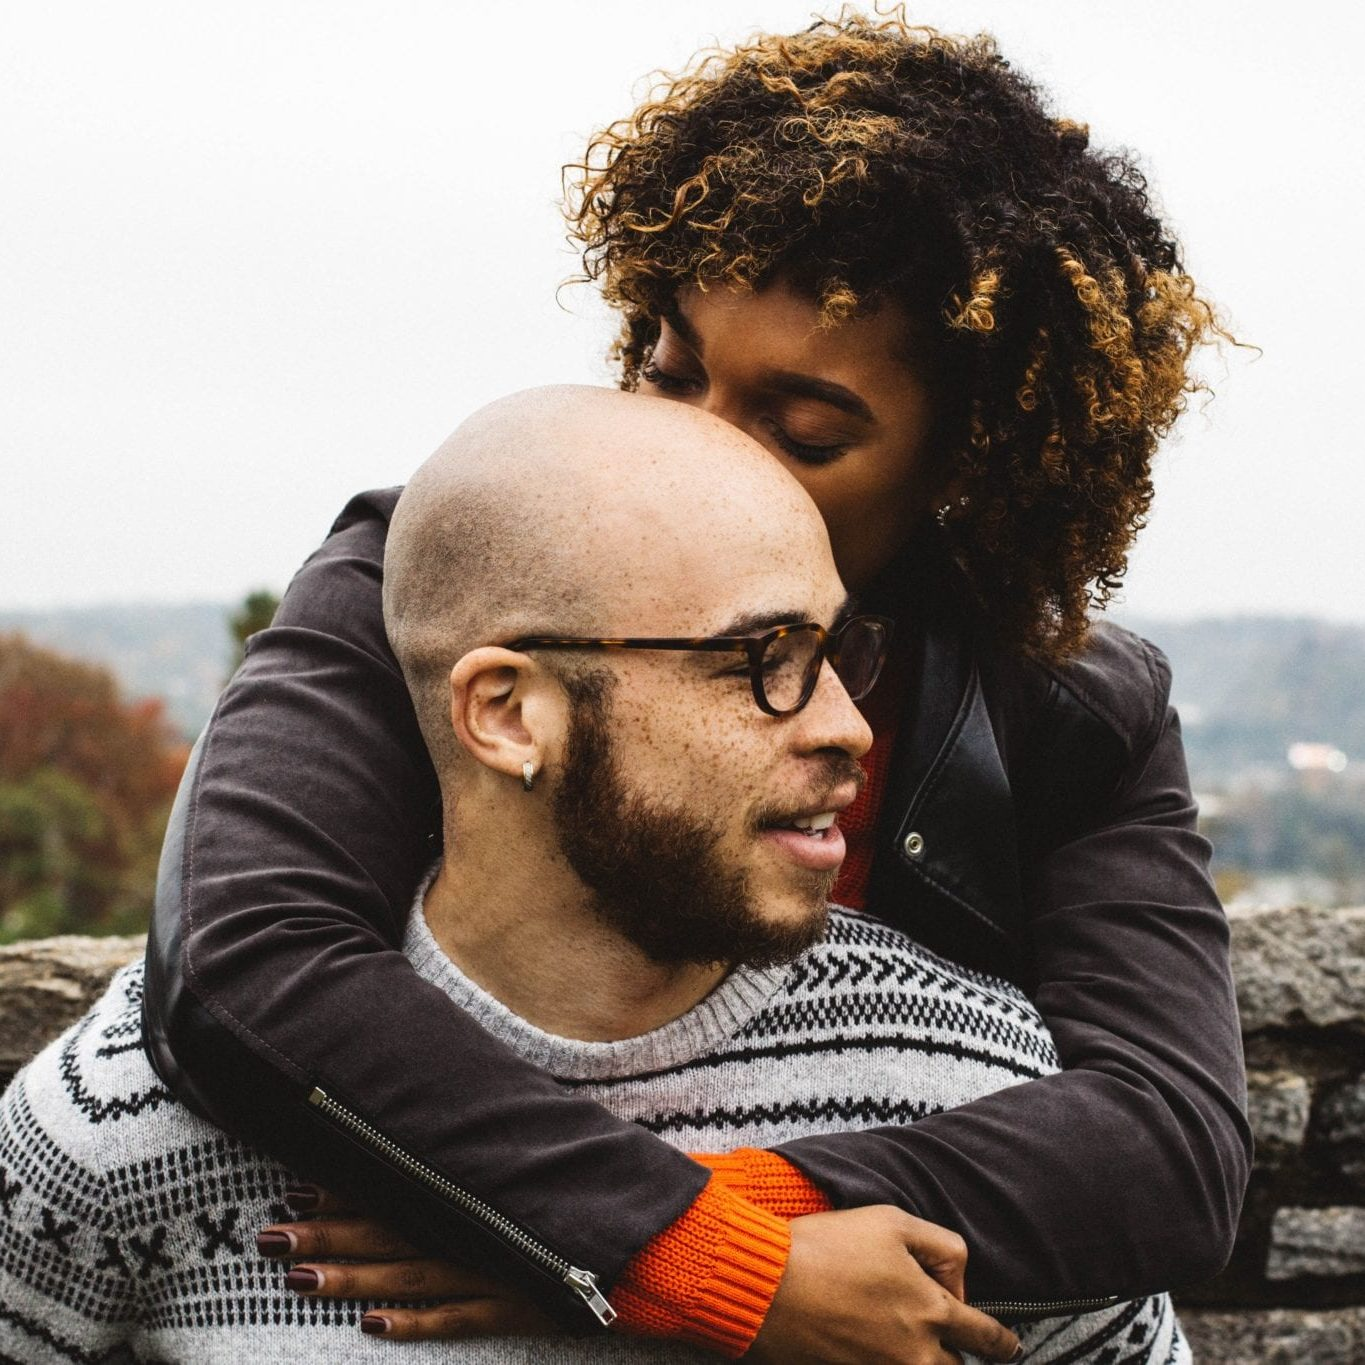 brown couple - justin-follis-A7Um4oi-UYU-unsplash